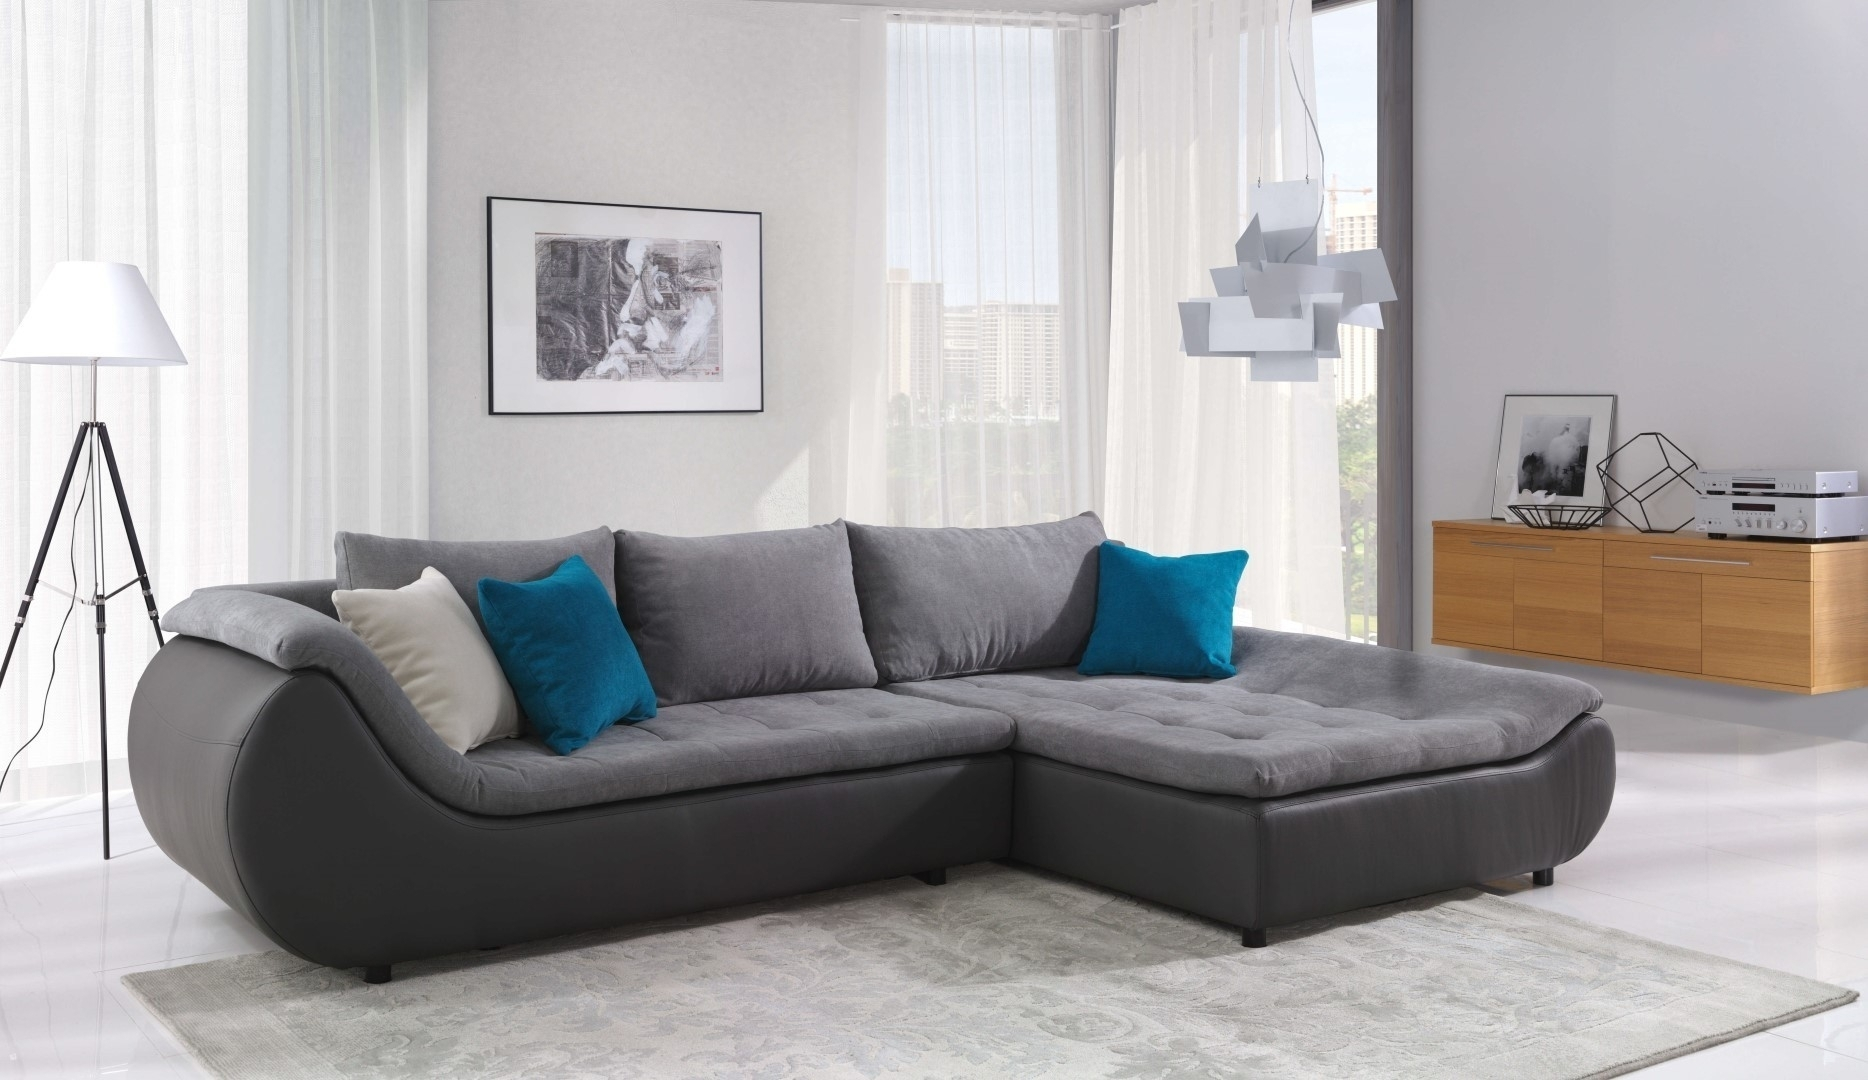 Collection Sectional Sofas Rochester Ny – Mediasupload For Rochester Ny Sectional Sofas (View 4 of 10)